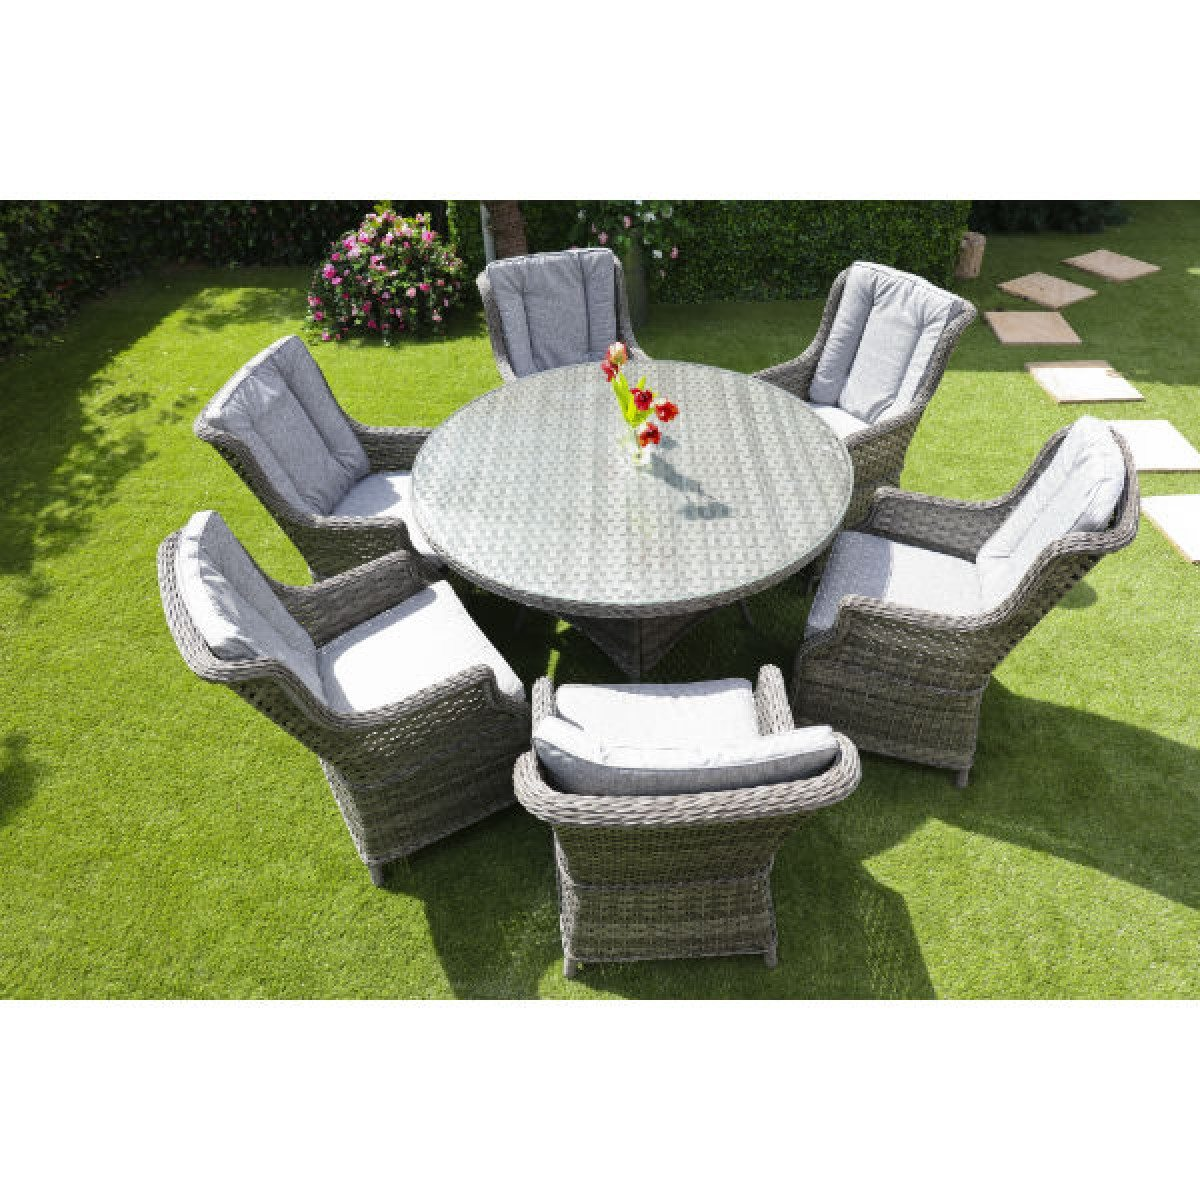 amalfi rattan round 6 seater garden furniture set